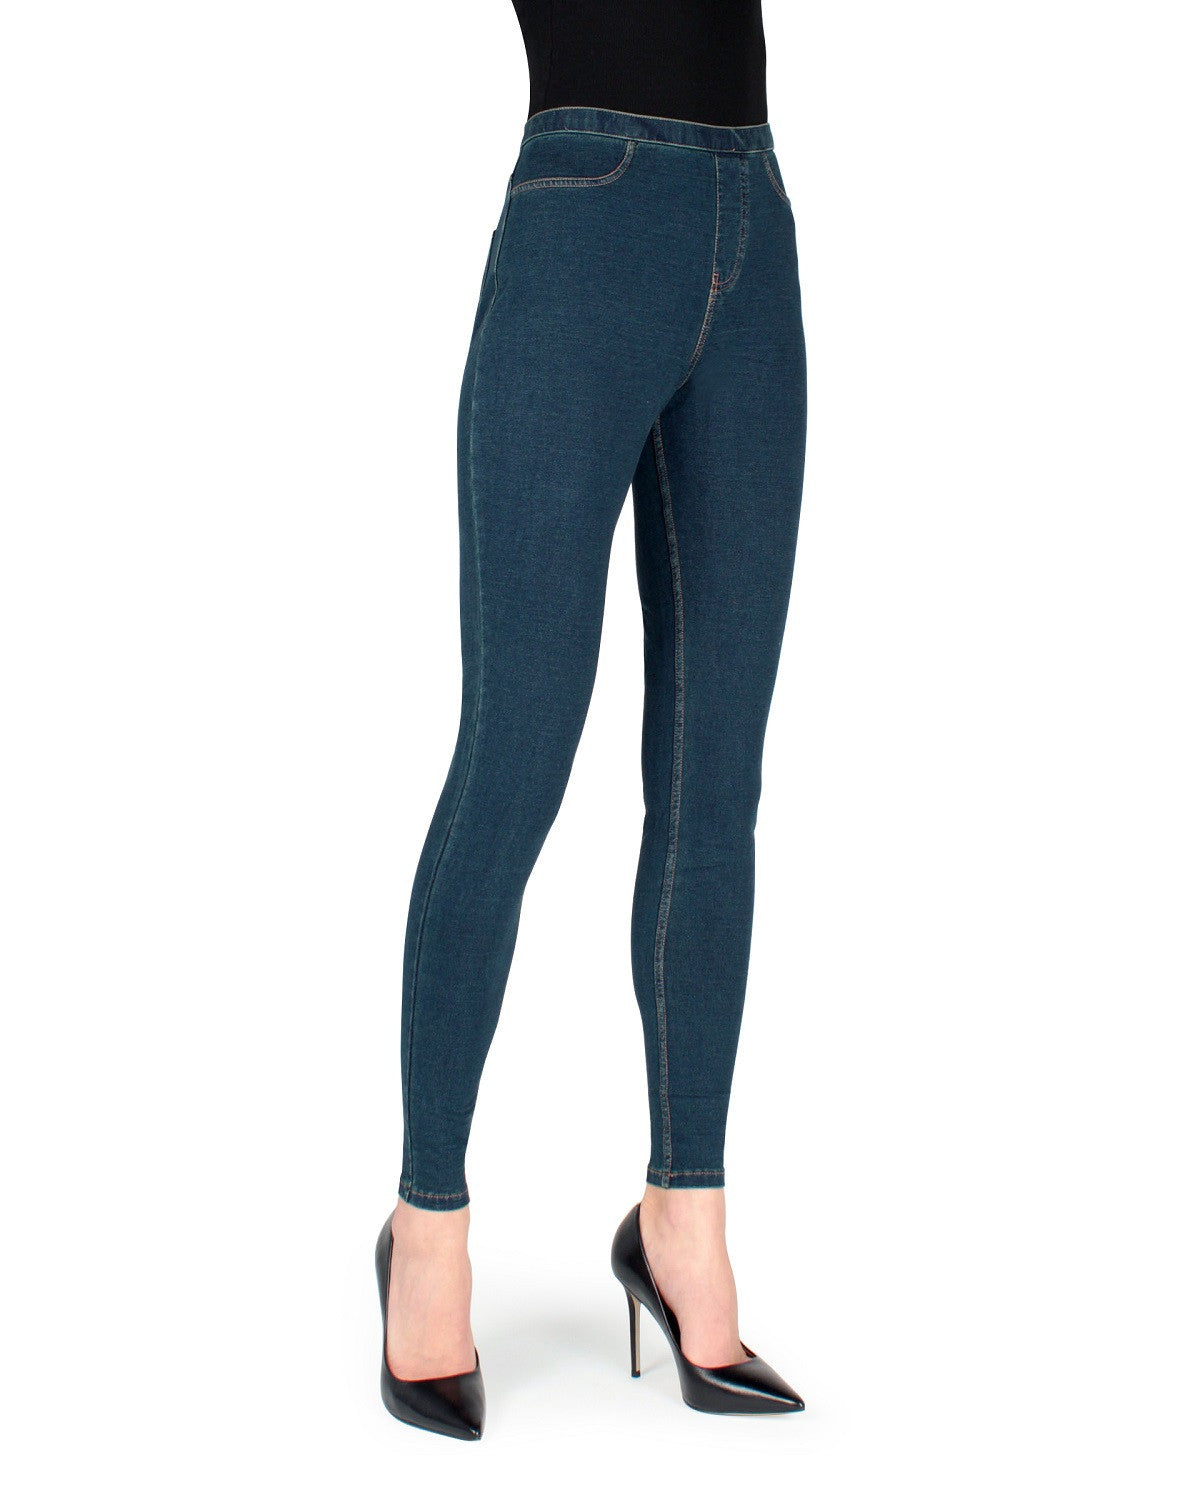 Alta Denim Leggings by MeMoi - Medium Wash - Front View -MQ-005 Medium Wash-